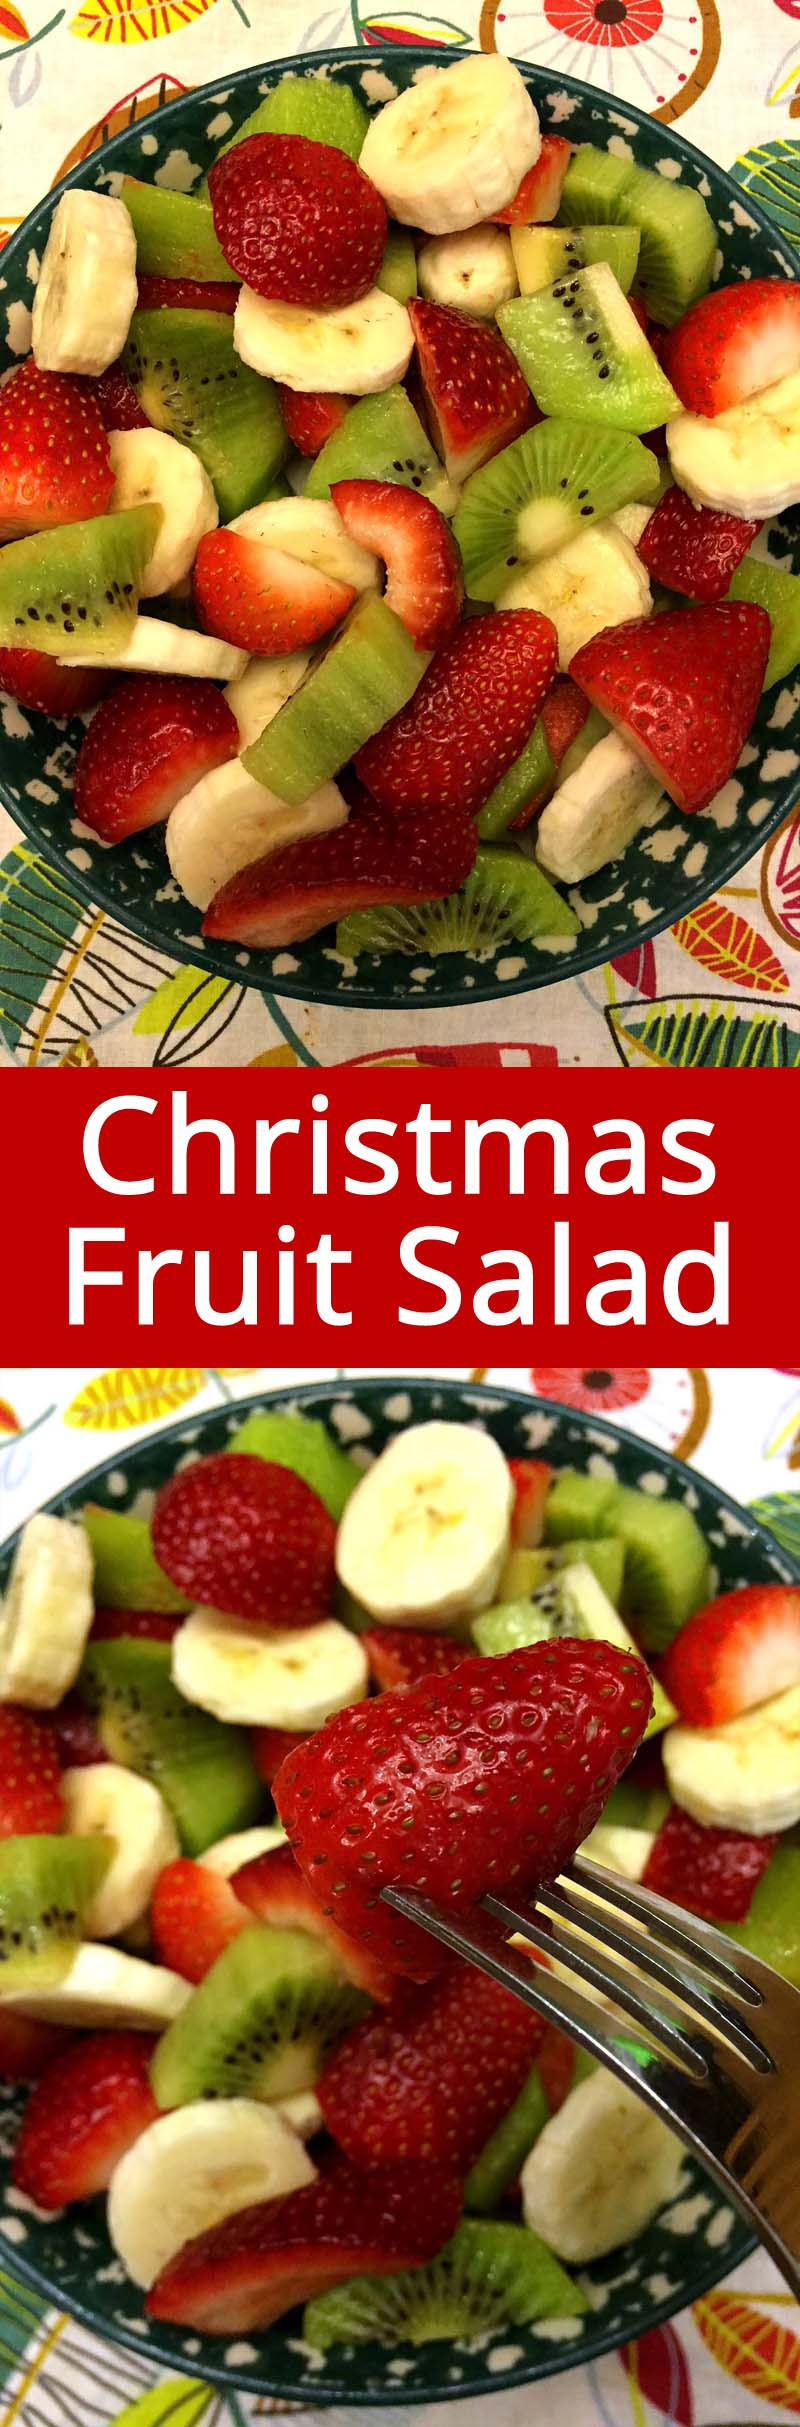 This red, green and white Christmas fruit salad is so bright, cheerful and delicious! Made with strawberries, kiwis and bananas, it's doesn't get any easier than that! I'll make this fruit salad every Christmas!